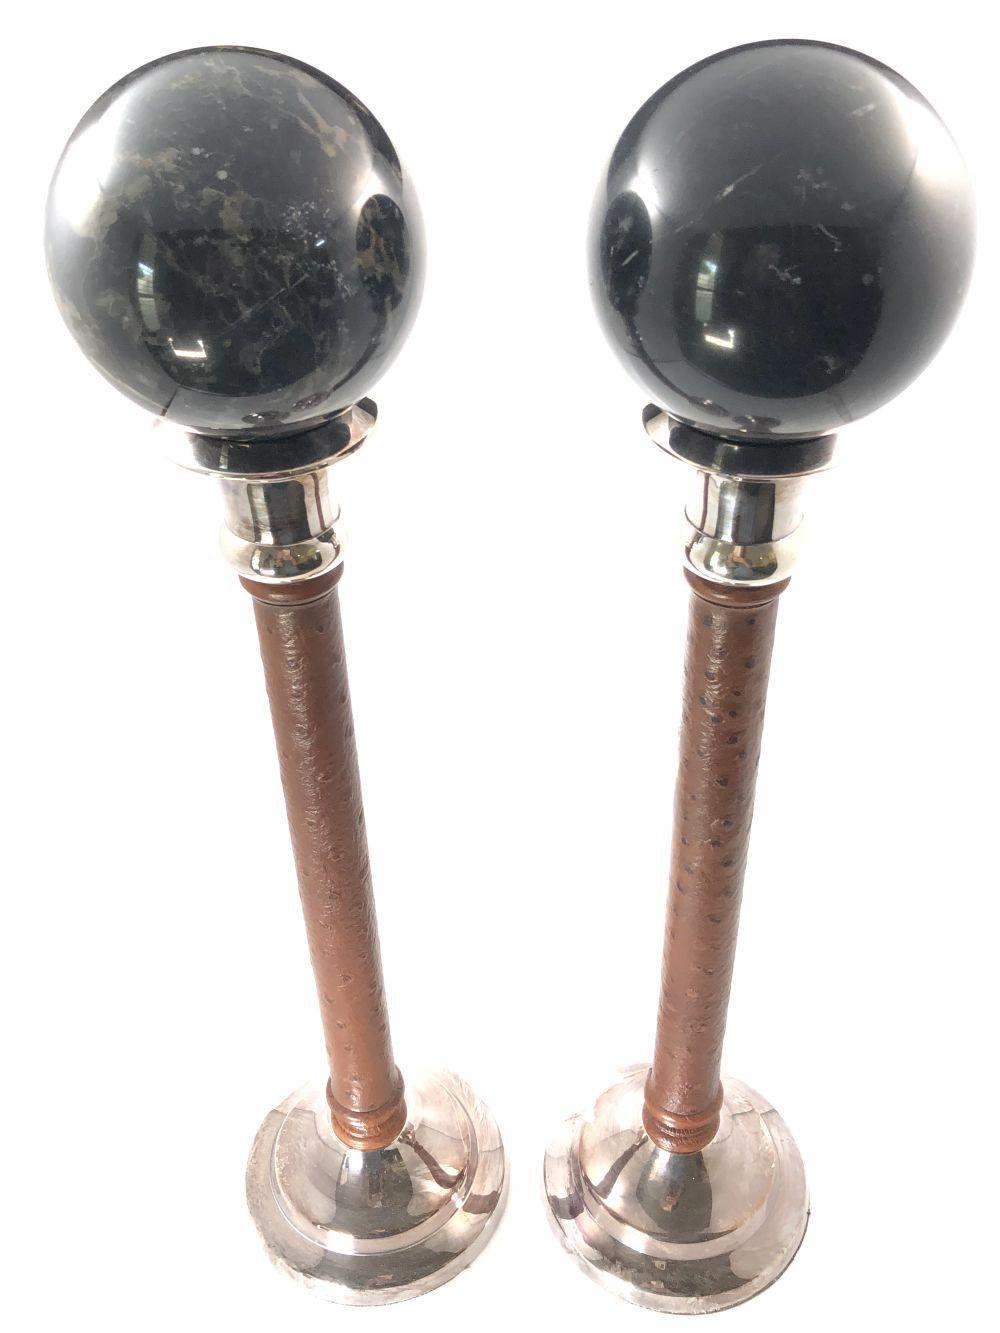 Pair of Kenneth Turner London Leather Covered Candlesticks with Decorative Marble Spheres